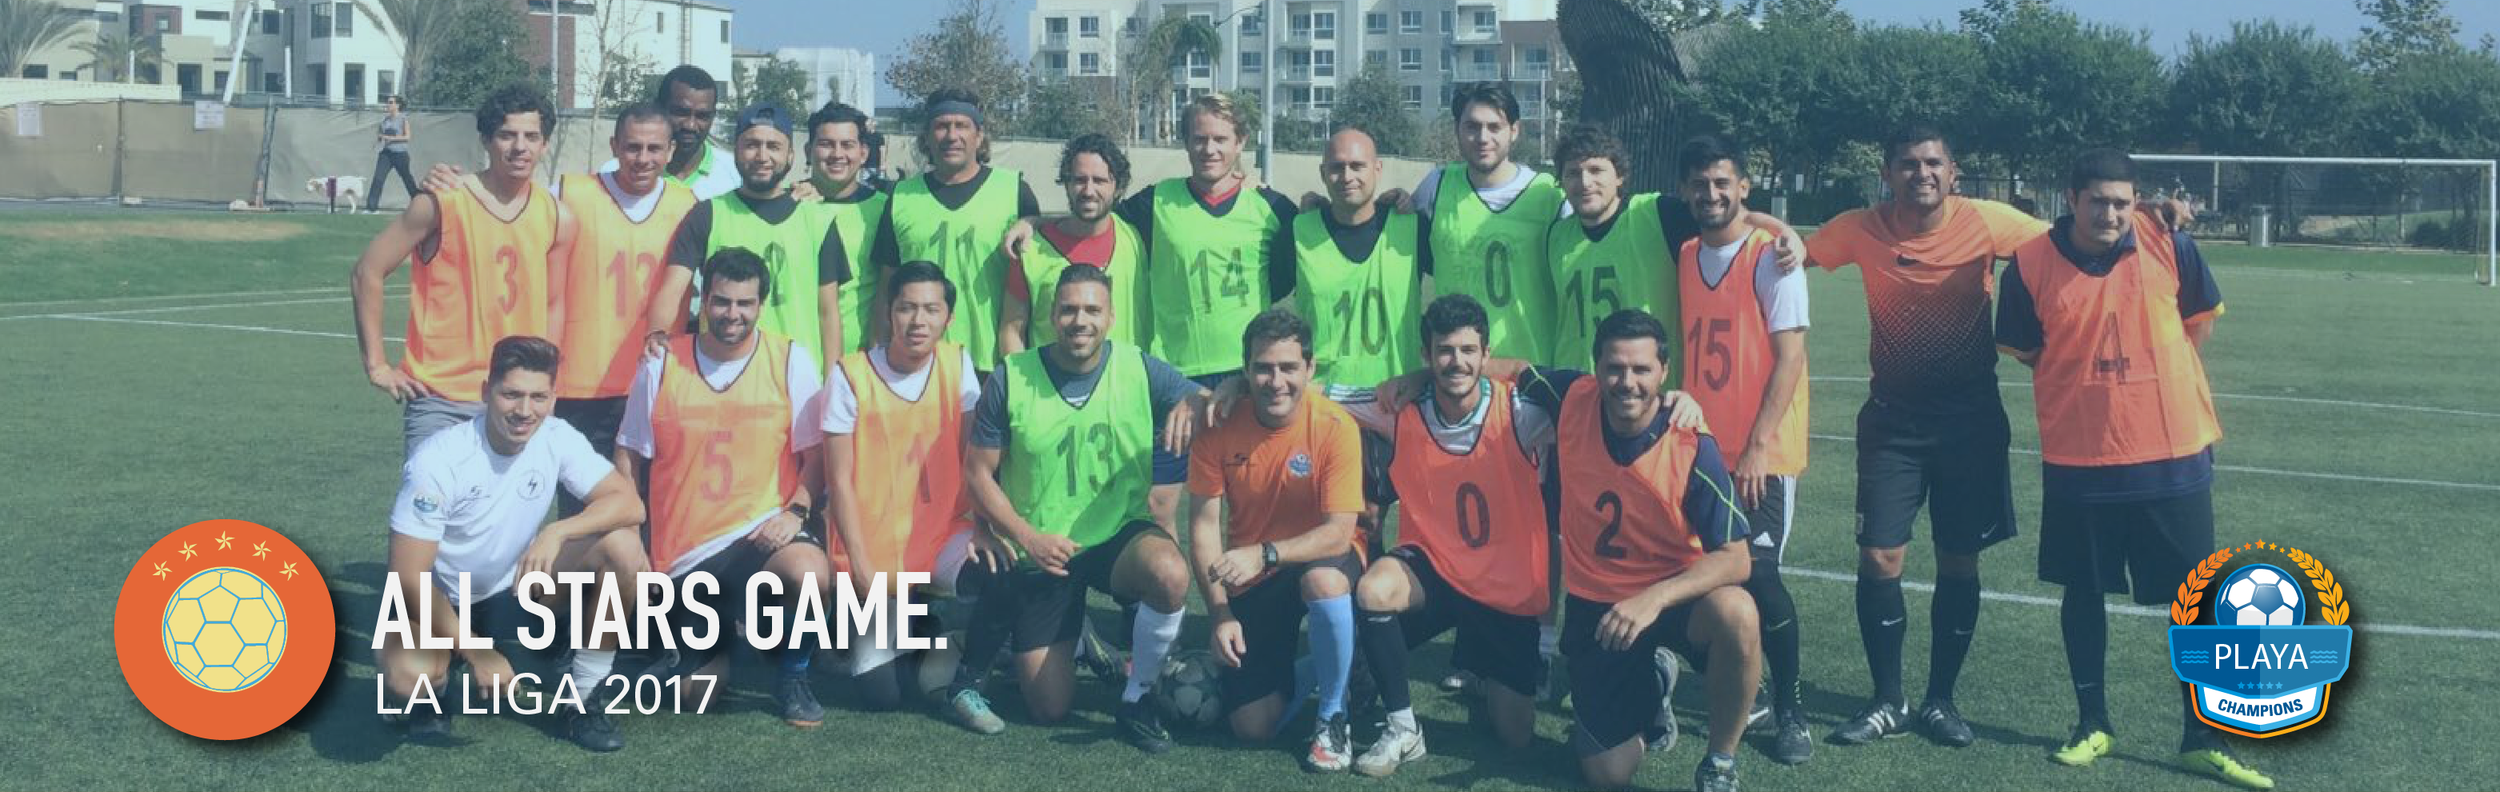 all stars game playa champions 2017 los angeles soccer league